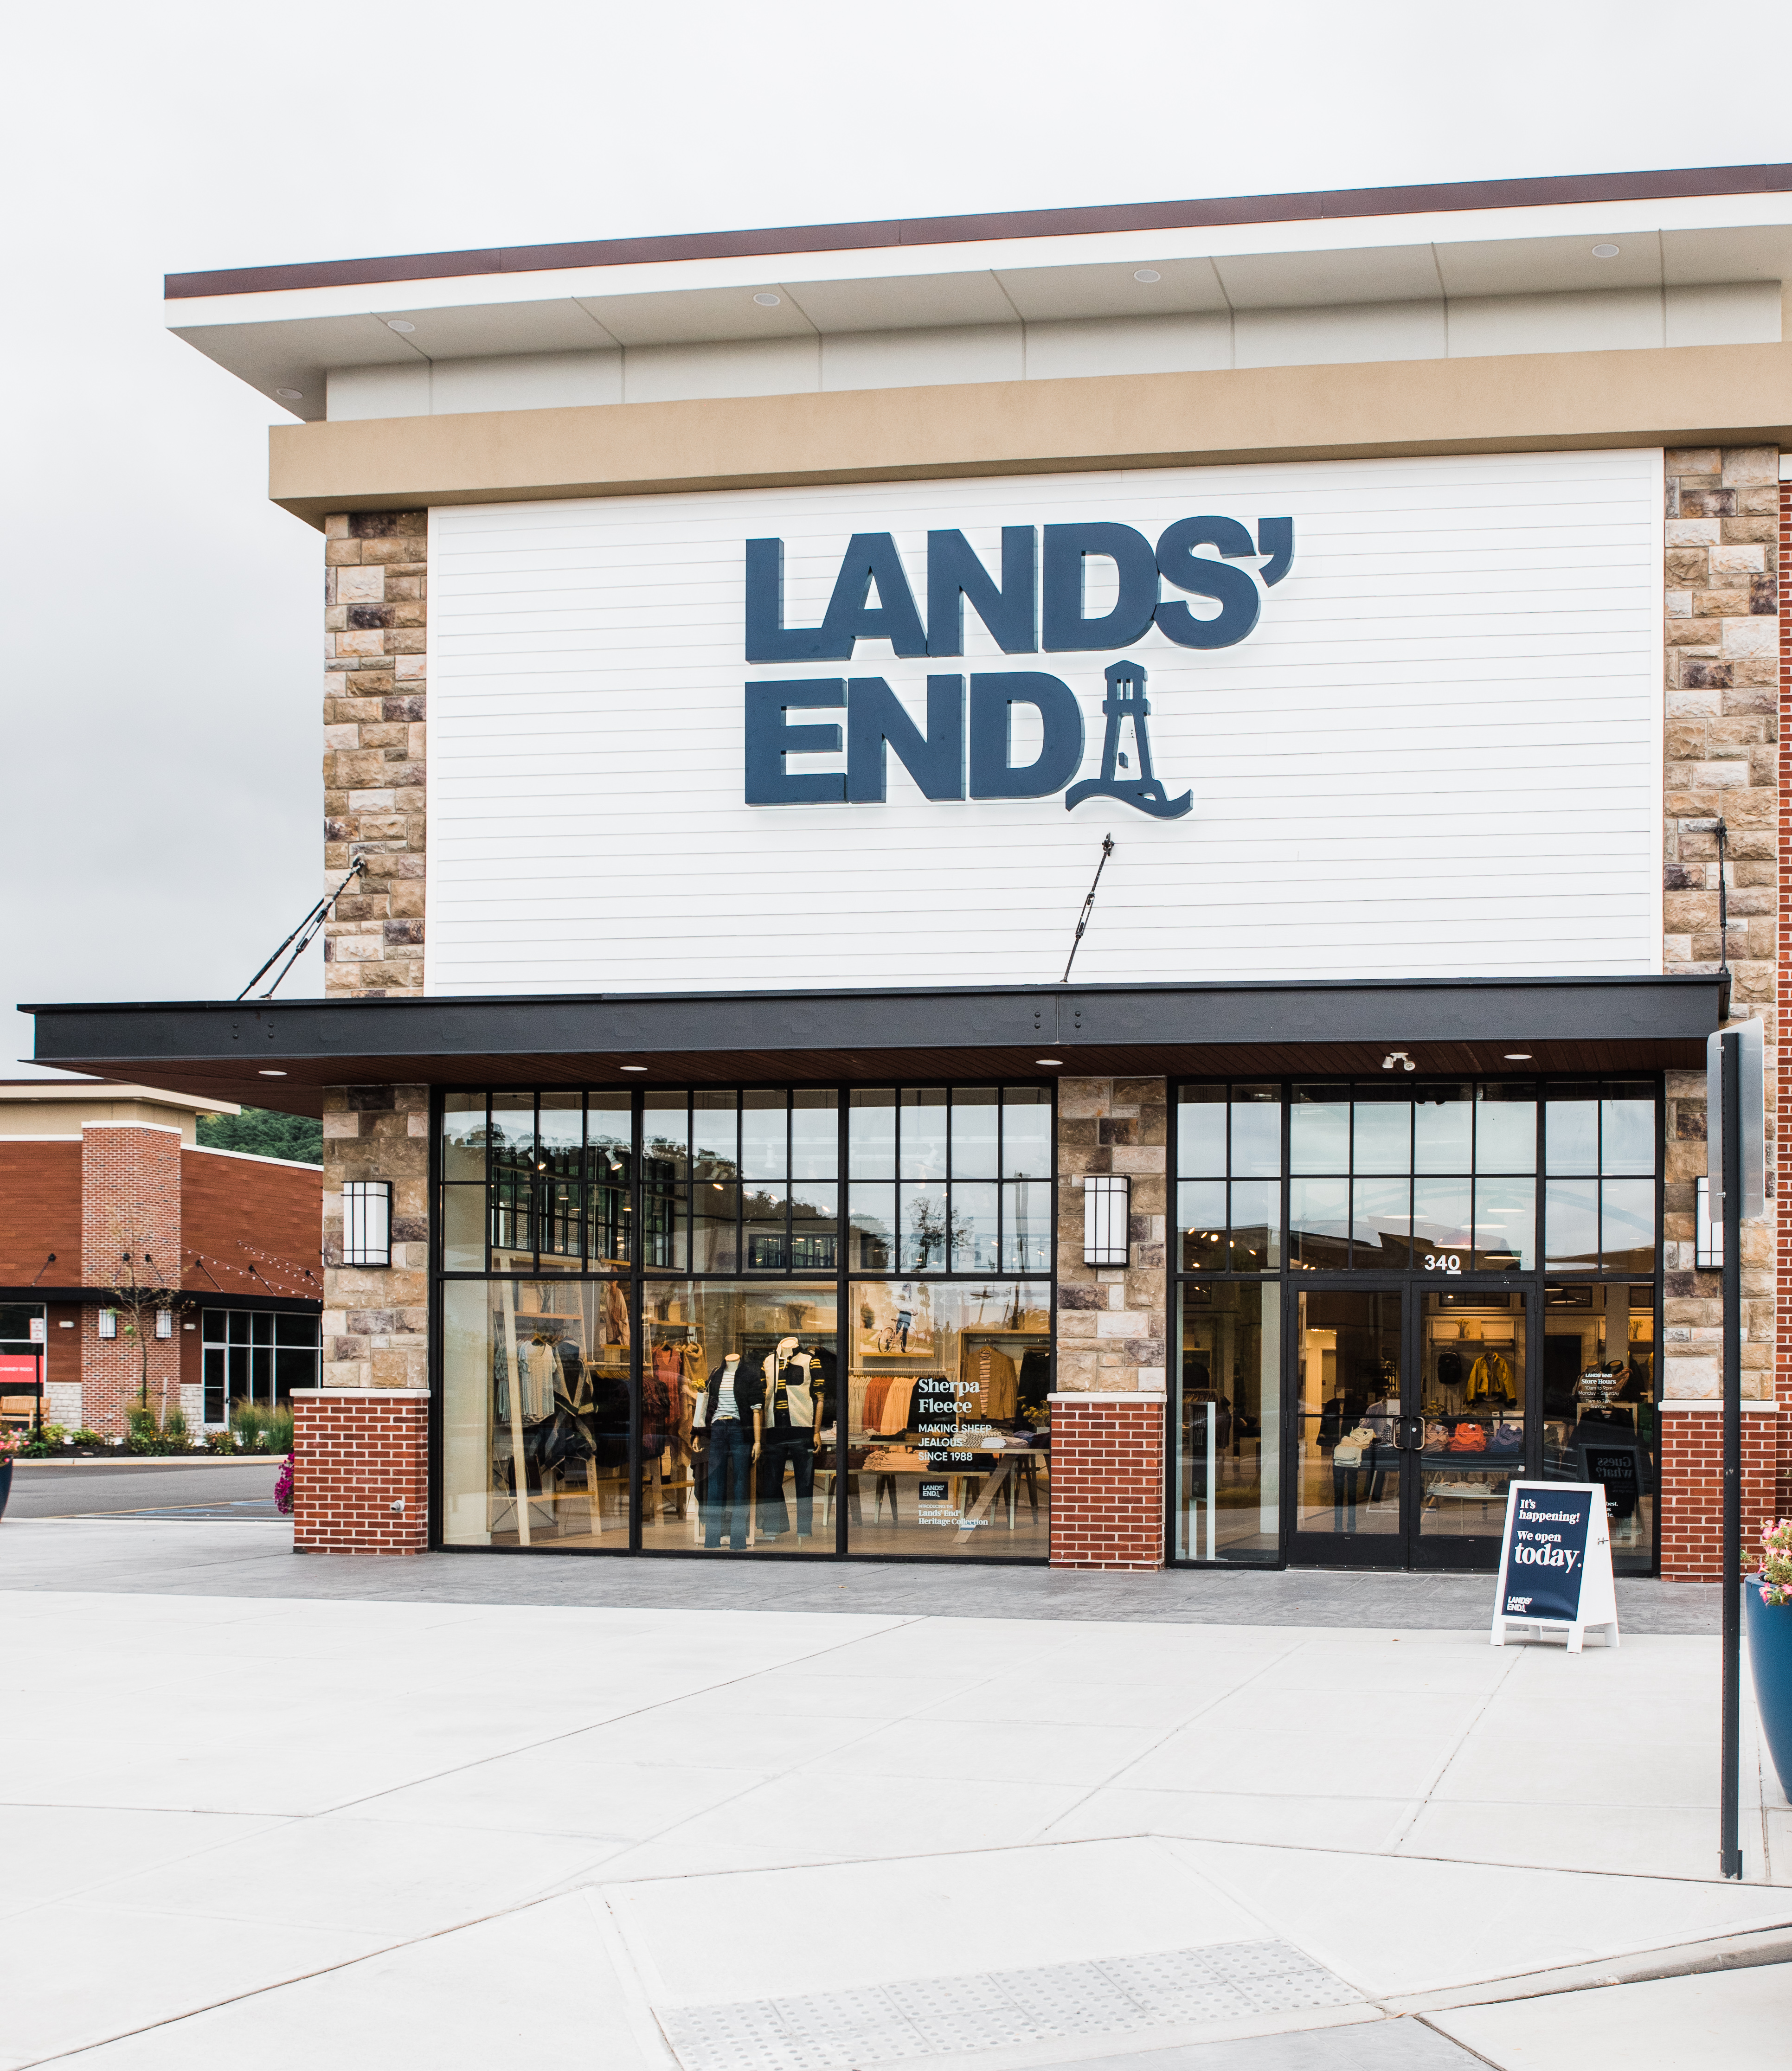 The CEO of Lands' End knows exactly who his customers are